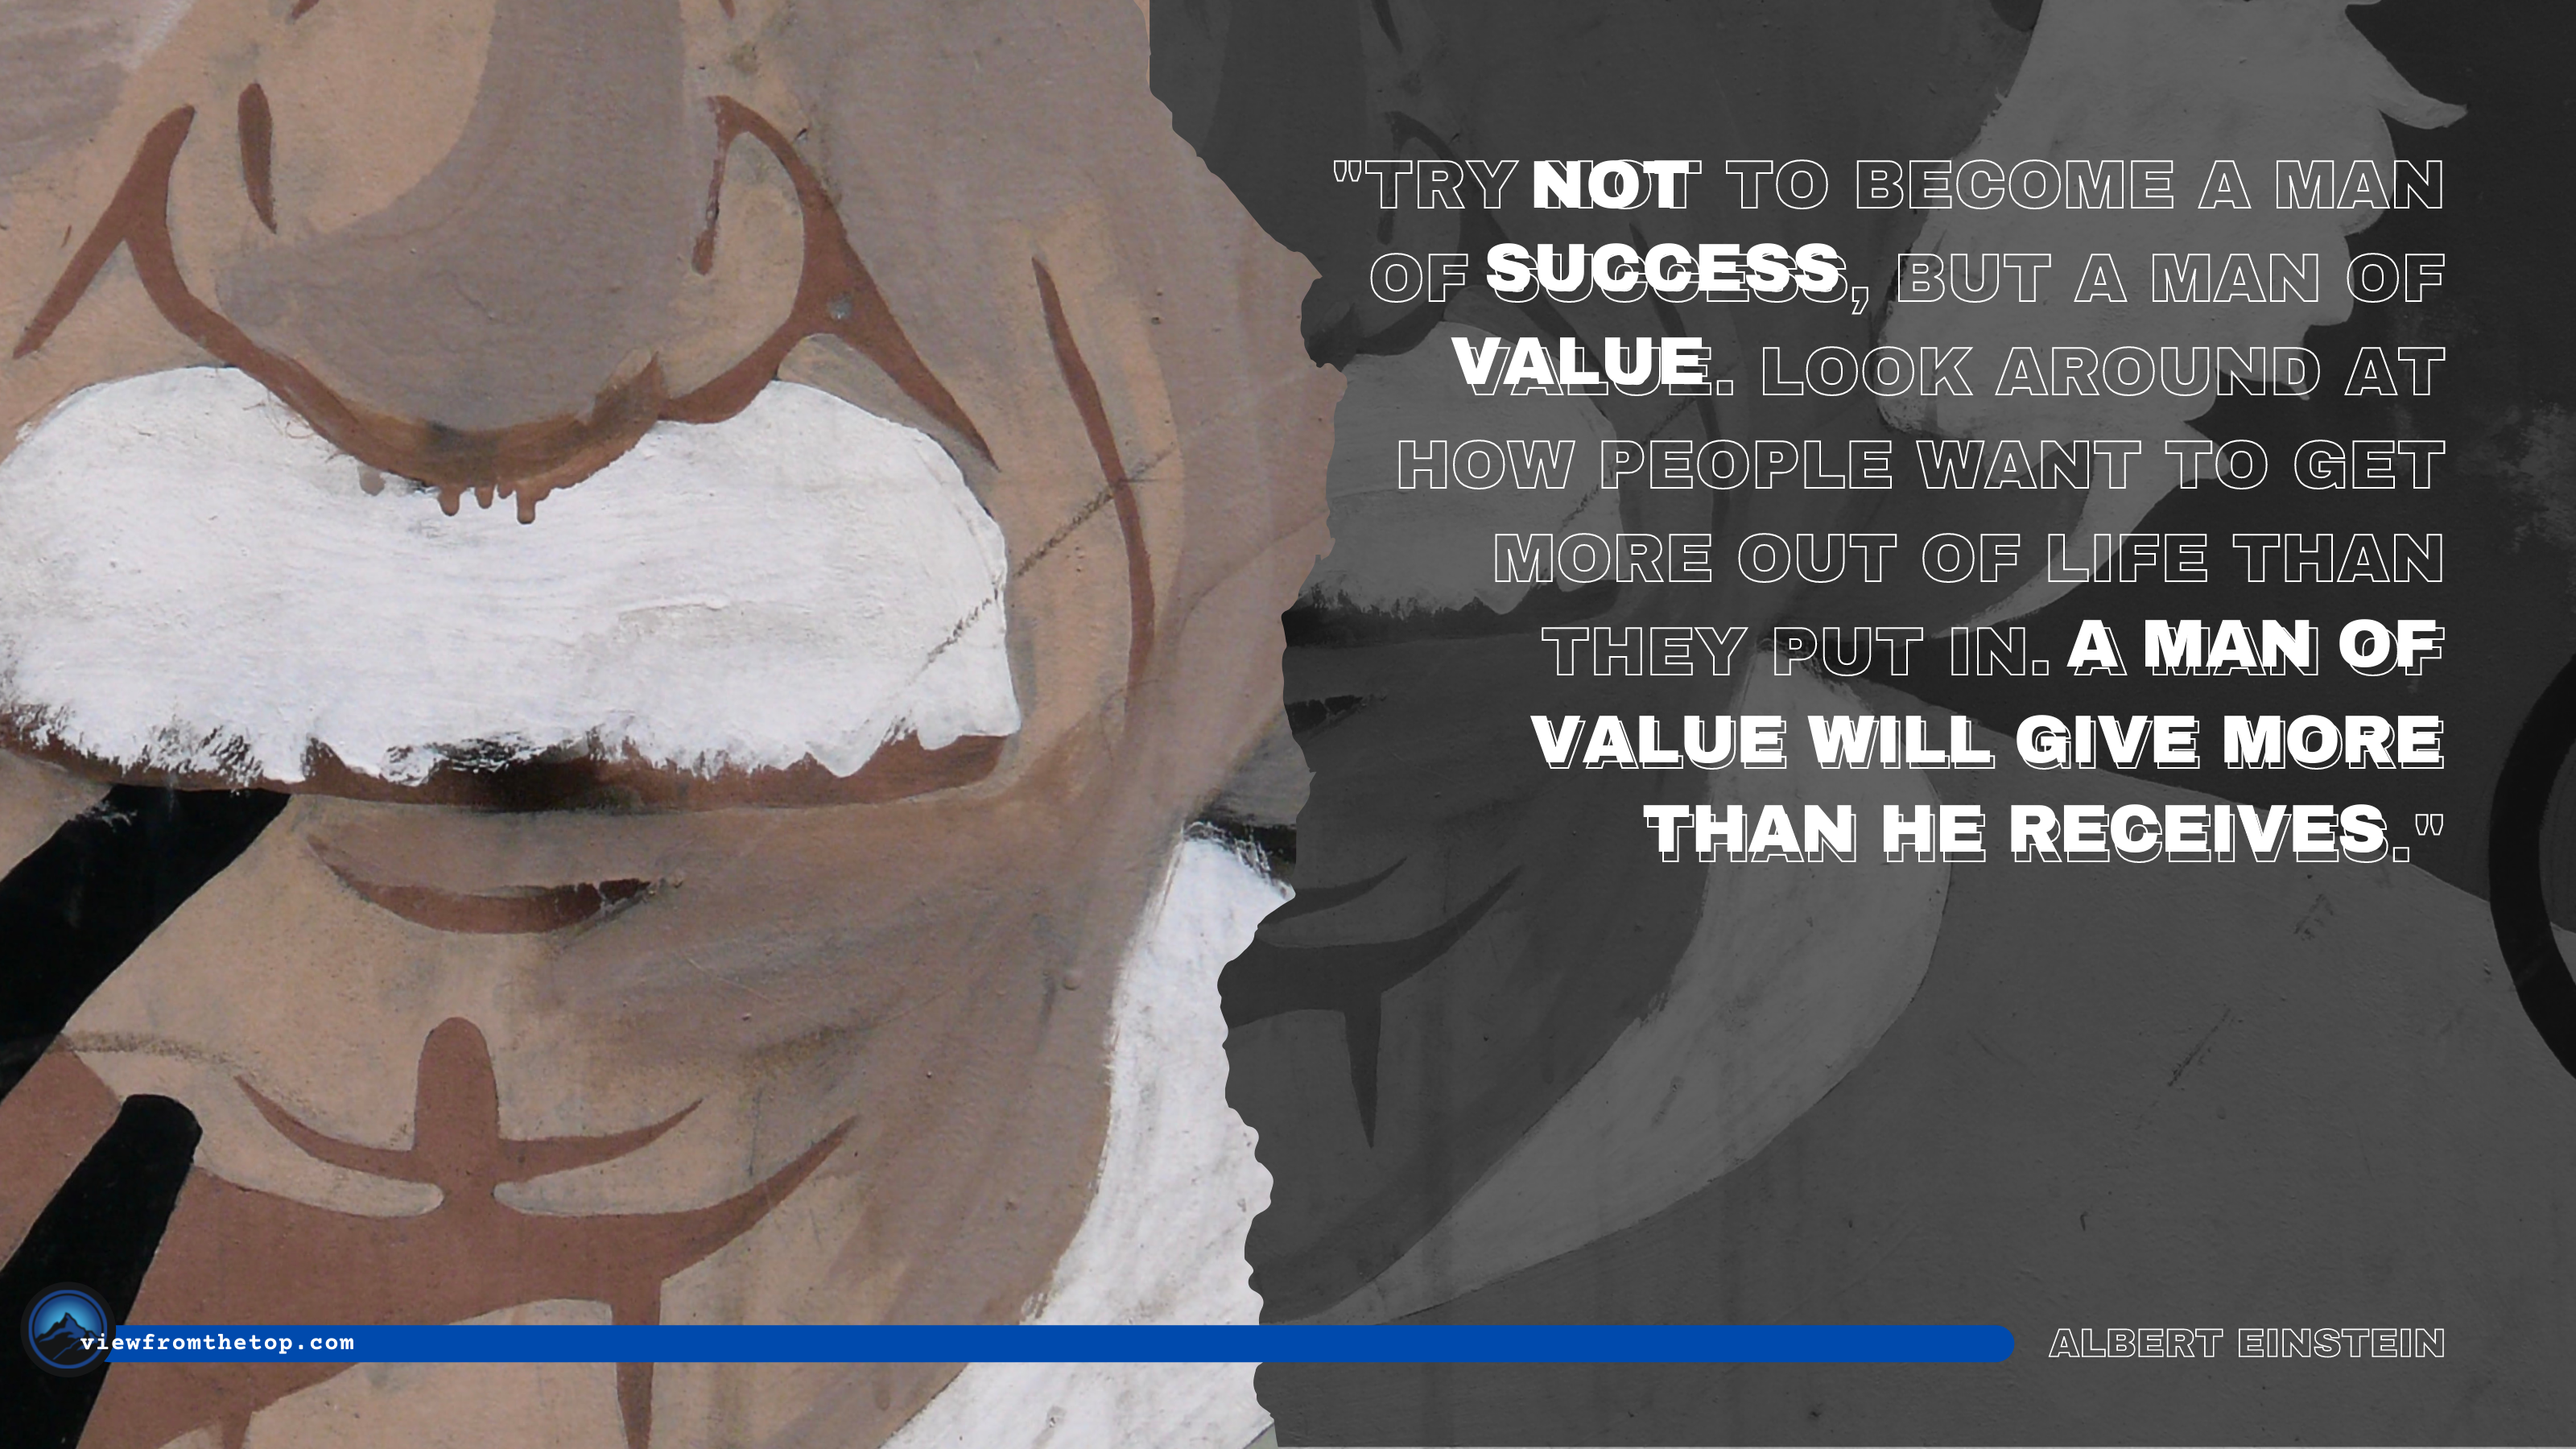 Try not to become a man of success, but a man of value. Look around at how people want to get more out of life than they put in. A man of value will give more than he receives.